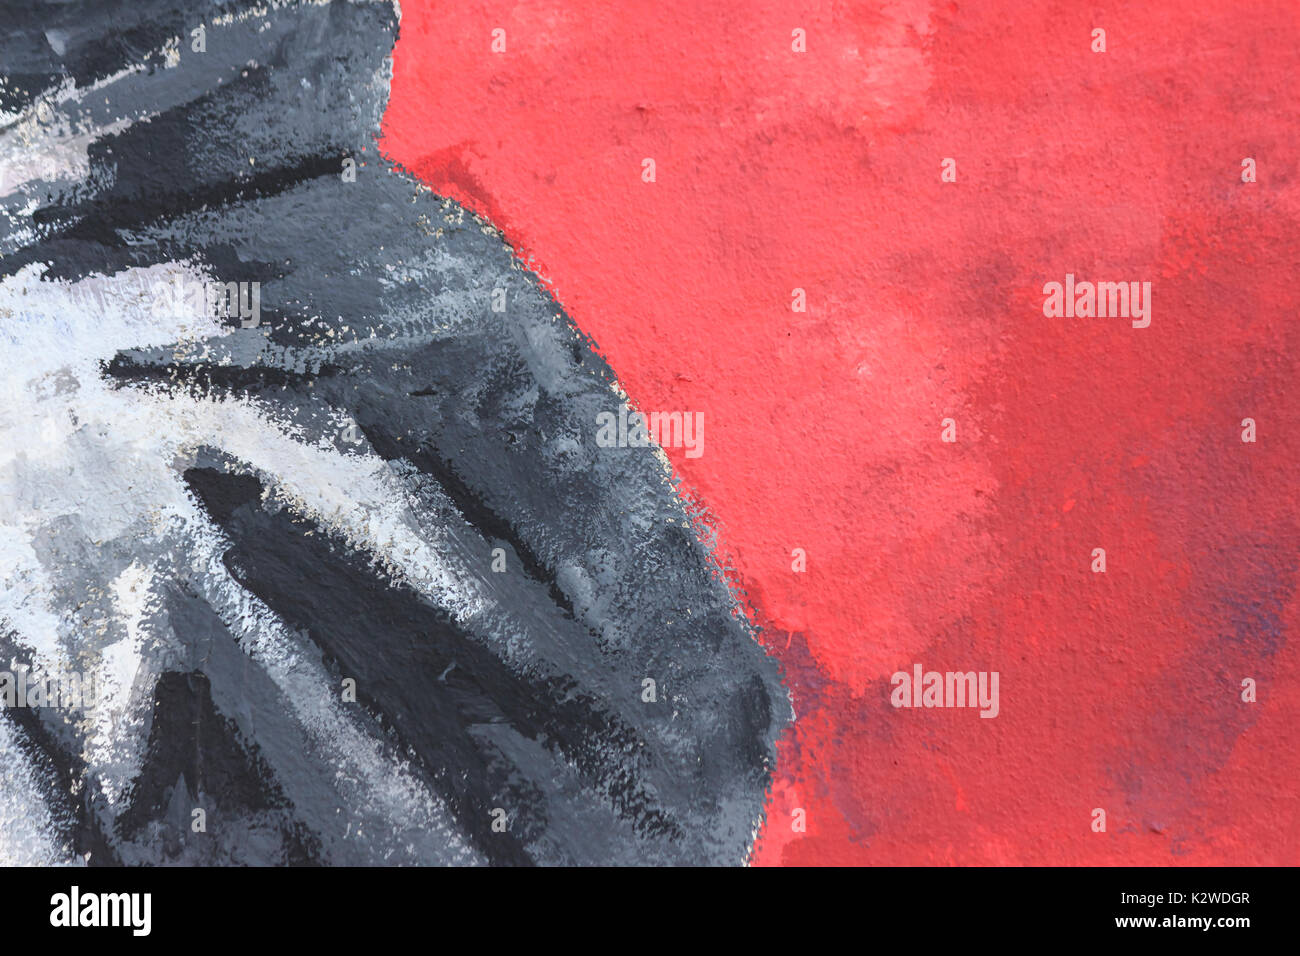 Colorful backgrounds, abstract themes - Stock Image